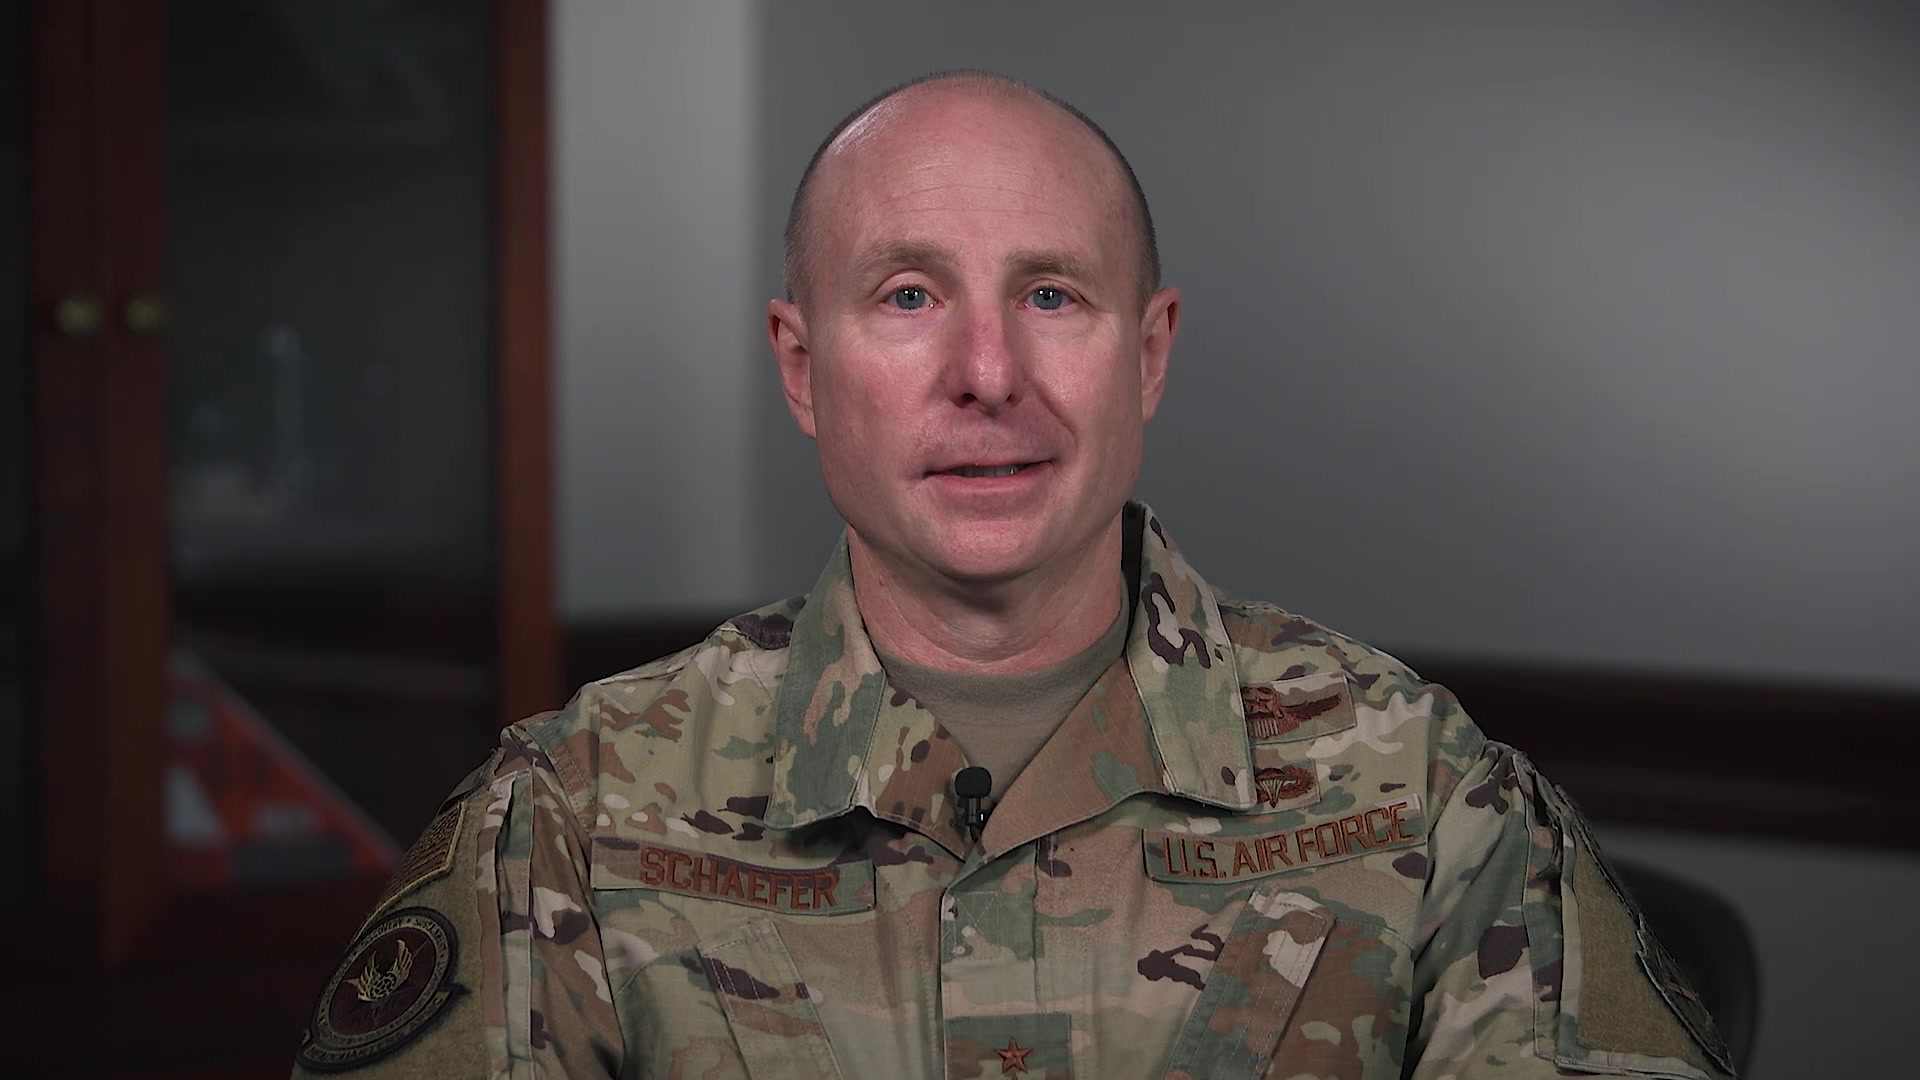 Maj. Gen. Carl Schaefer, Deputy Commander of Air Force Materiel Command, Wright-Patterson Air Force Base, Ohio, shares his perspectives on the importance of communication to create meaningful change. For more information, visit www.afmc.af.mil/connect. (U.S. Air Force Video by Matthew Clouse and Christopher Decker)